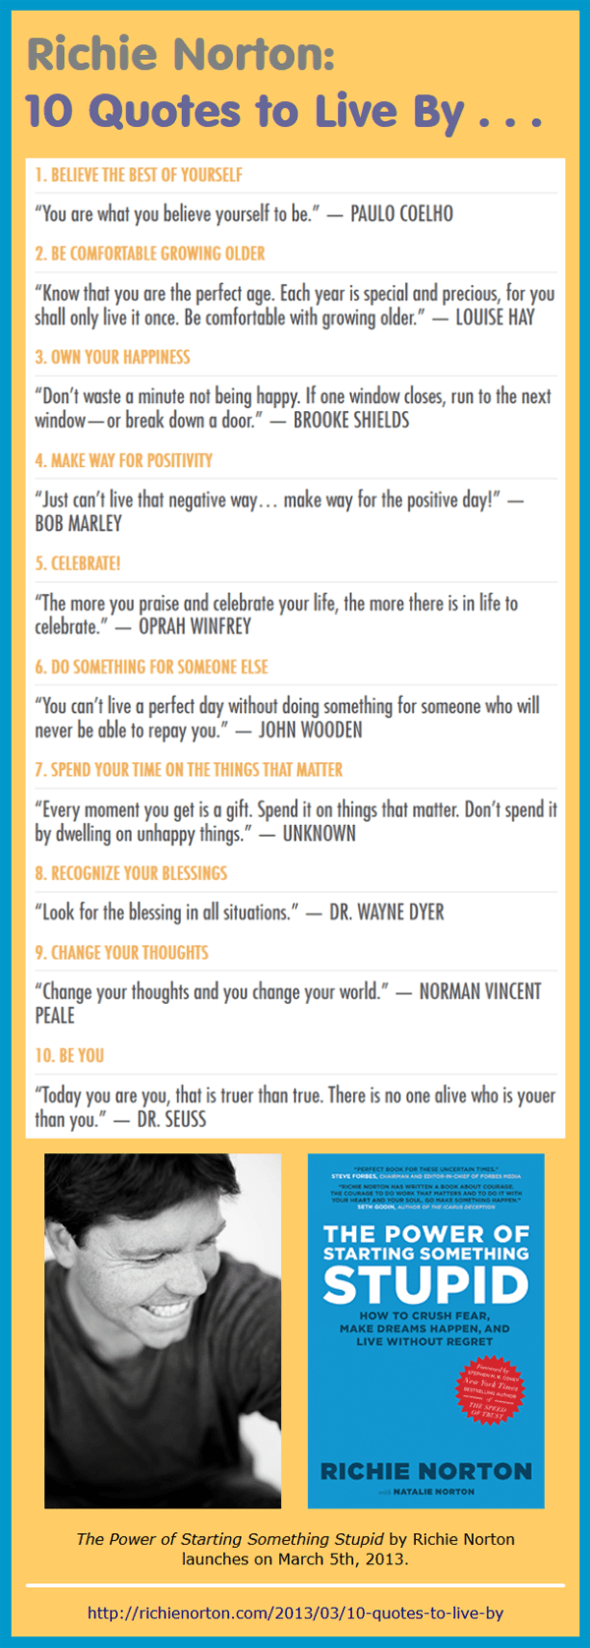 The Power of Stupid - 10 Quotes